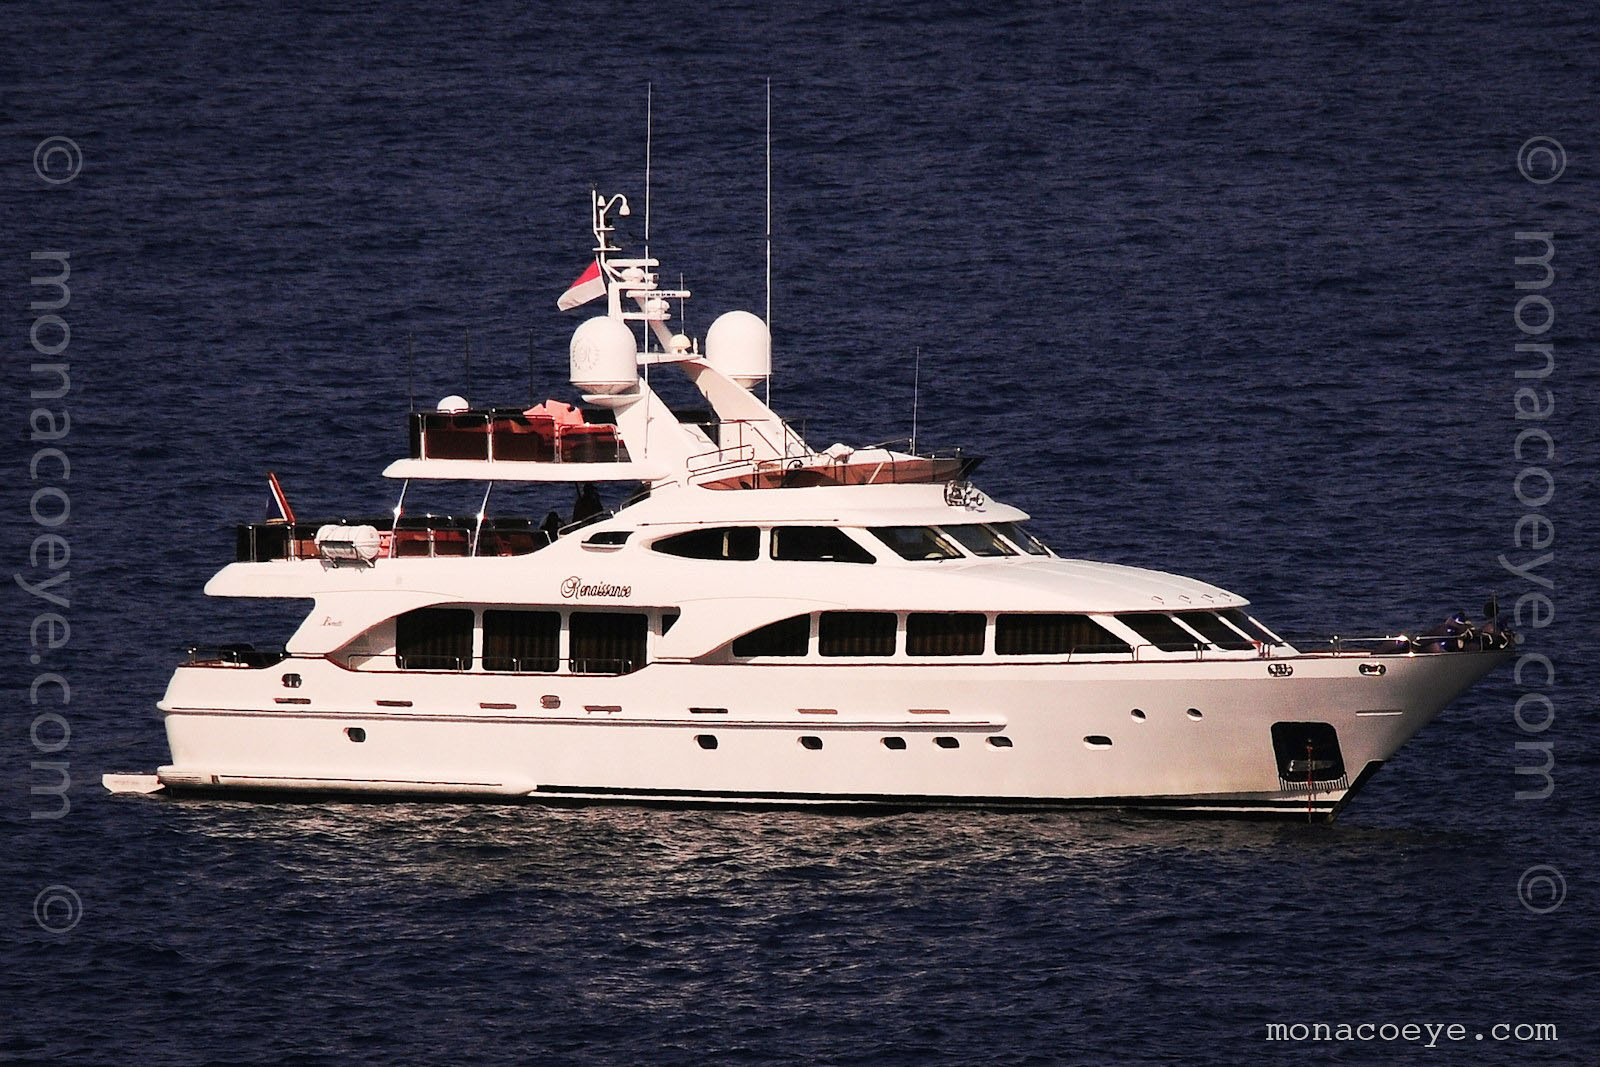 Renaissance. 110 foot yacht in the Benetti Tradition series